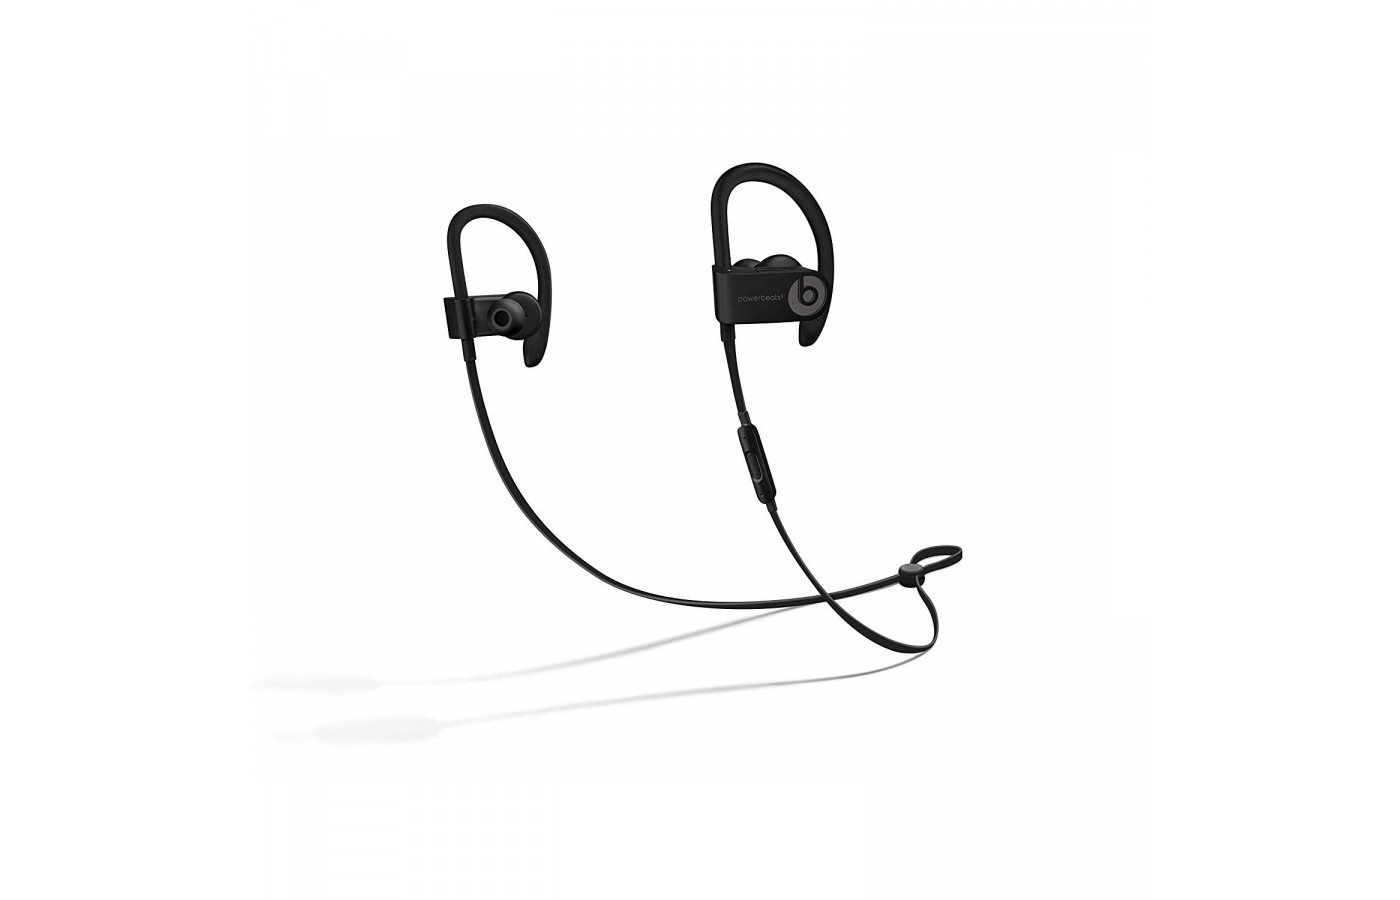 The Beats Powerbeats 3 offer dynamic sound and strong bass to enhance any workout.